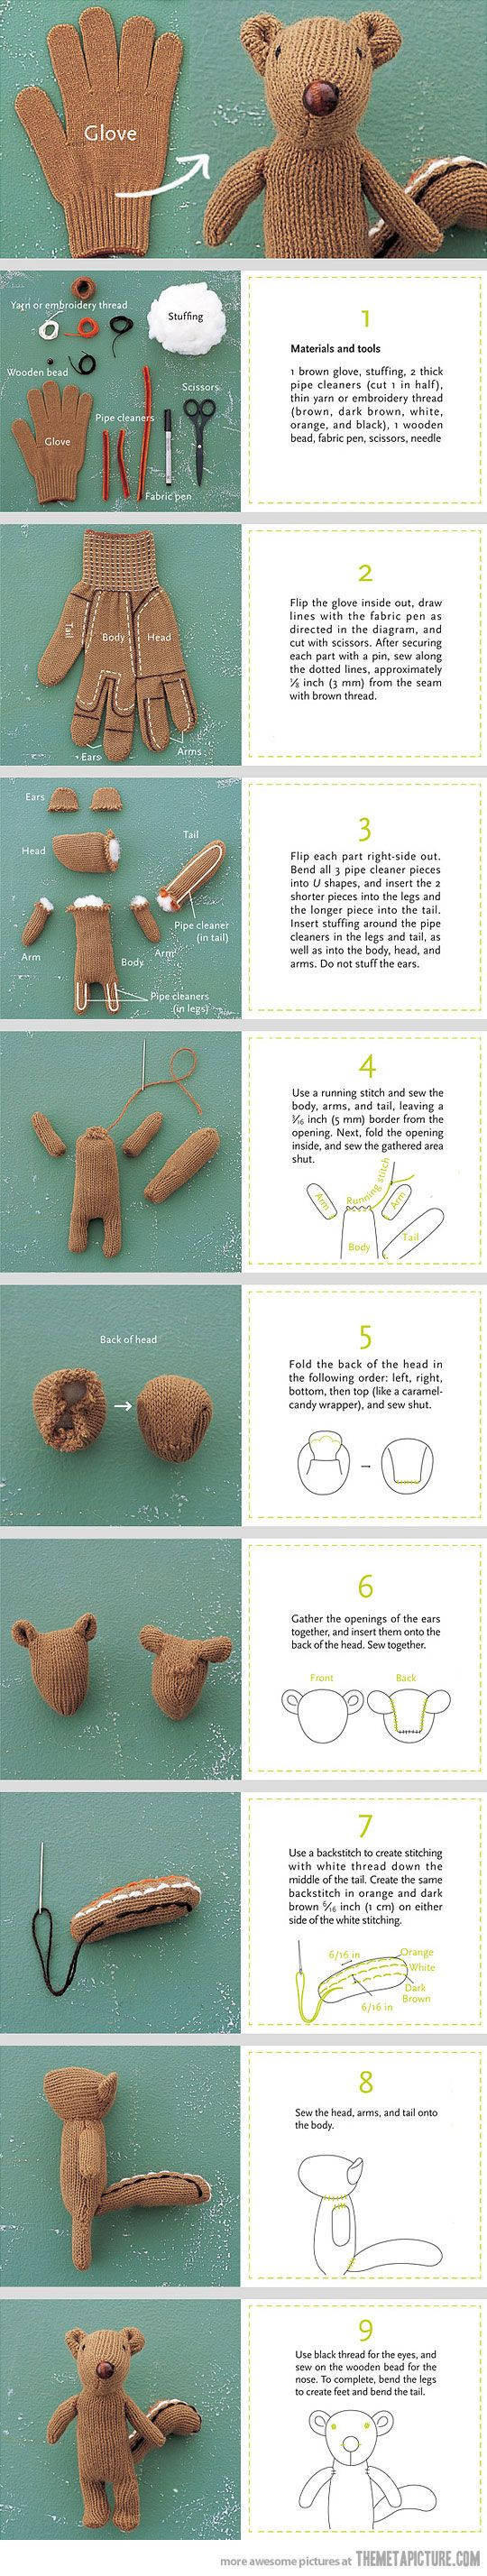 DIY How to Turn a Glove into a Chipmunk (I want one!) How cute for yourself or as a gift!